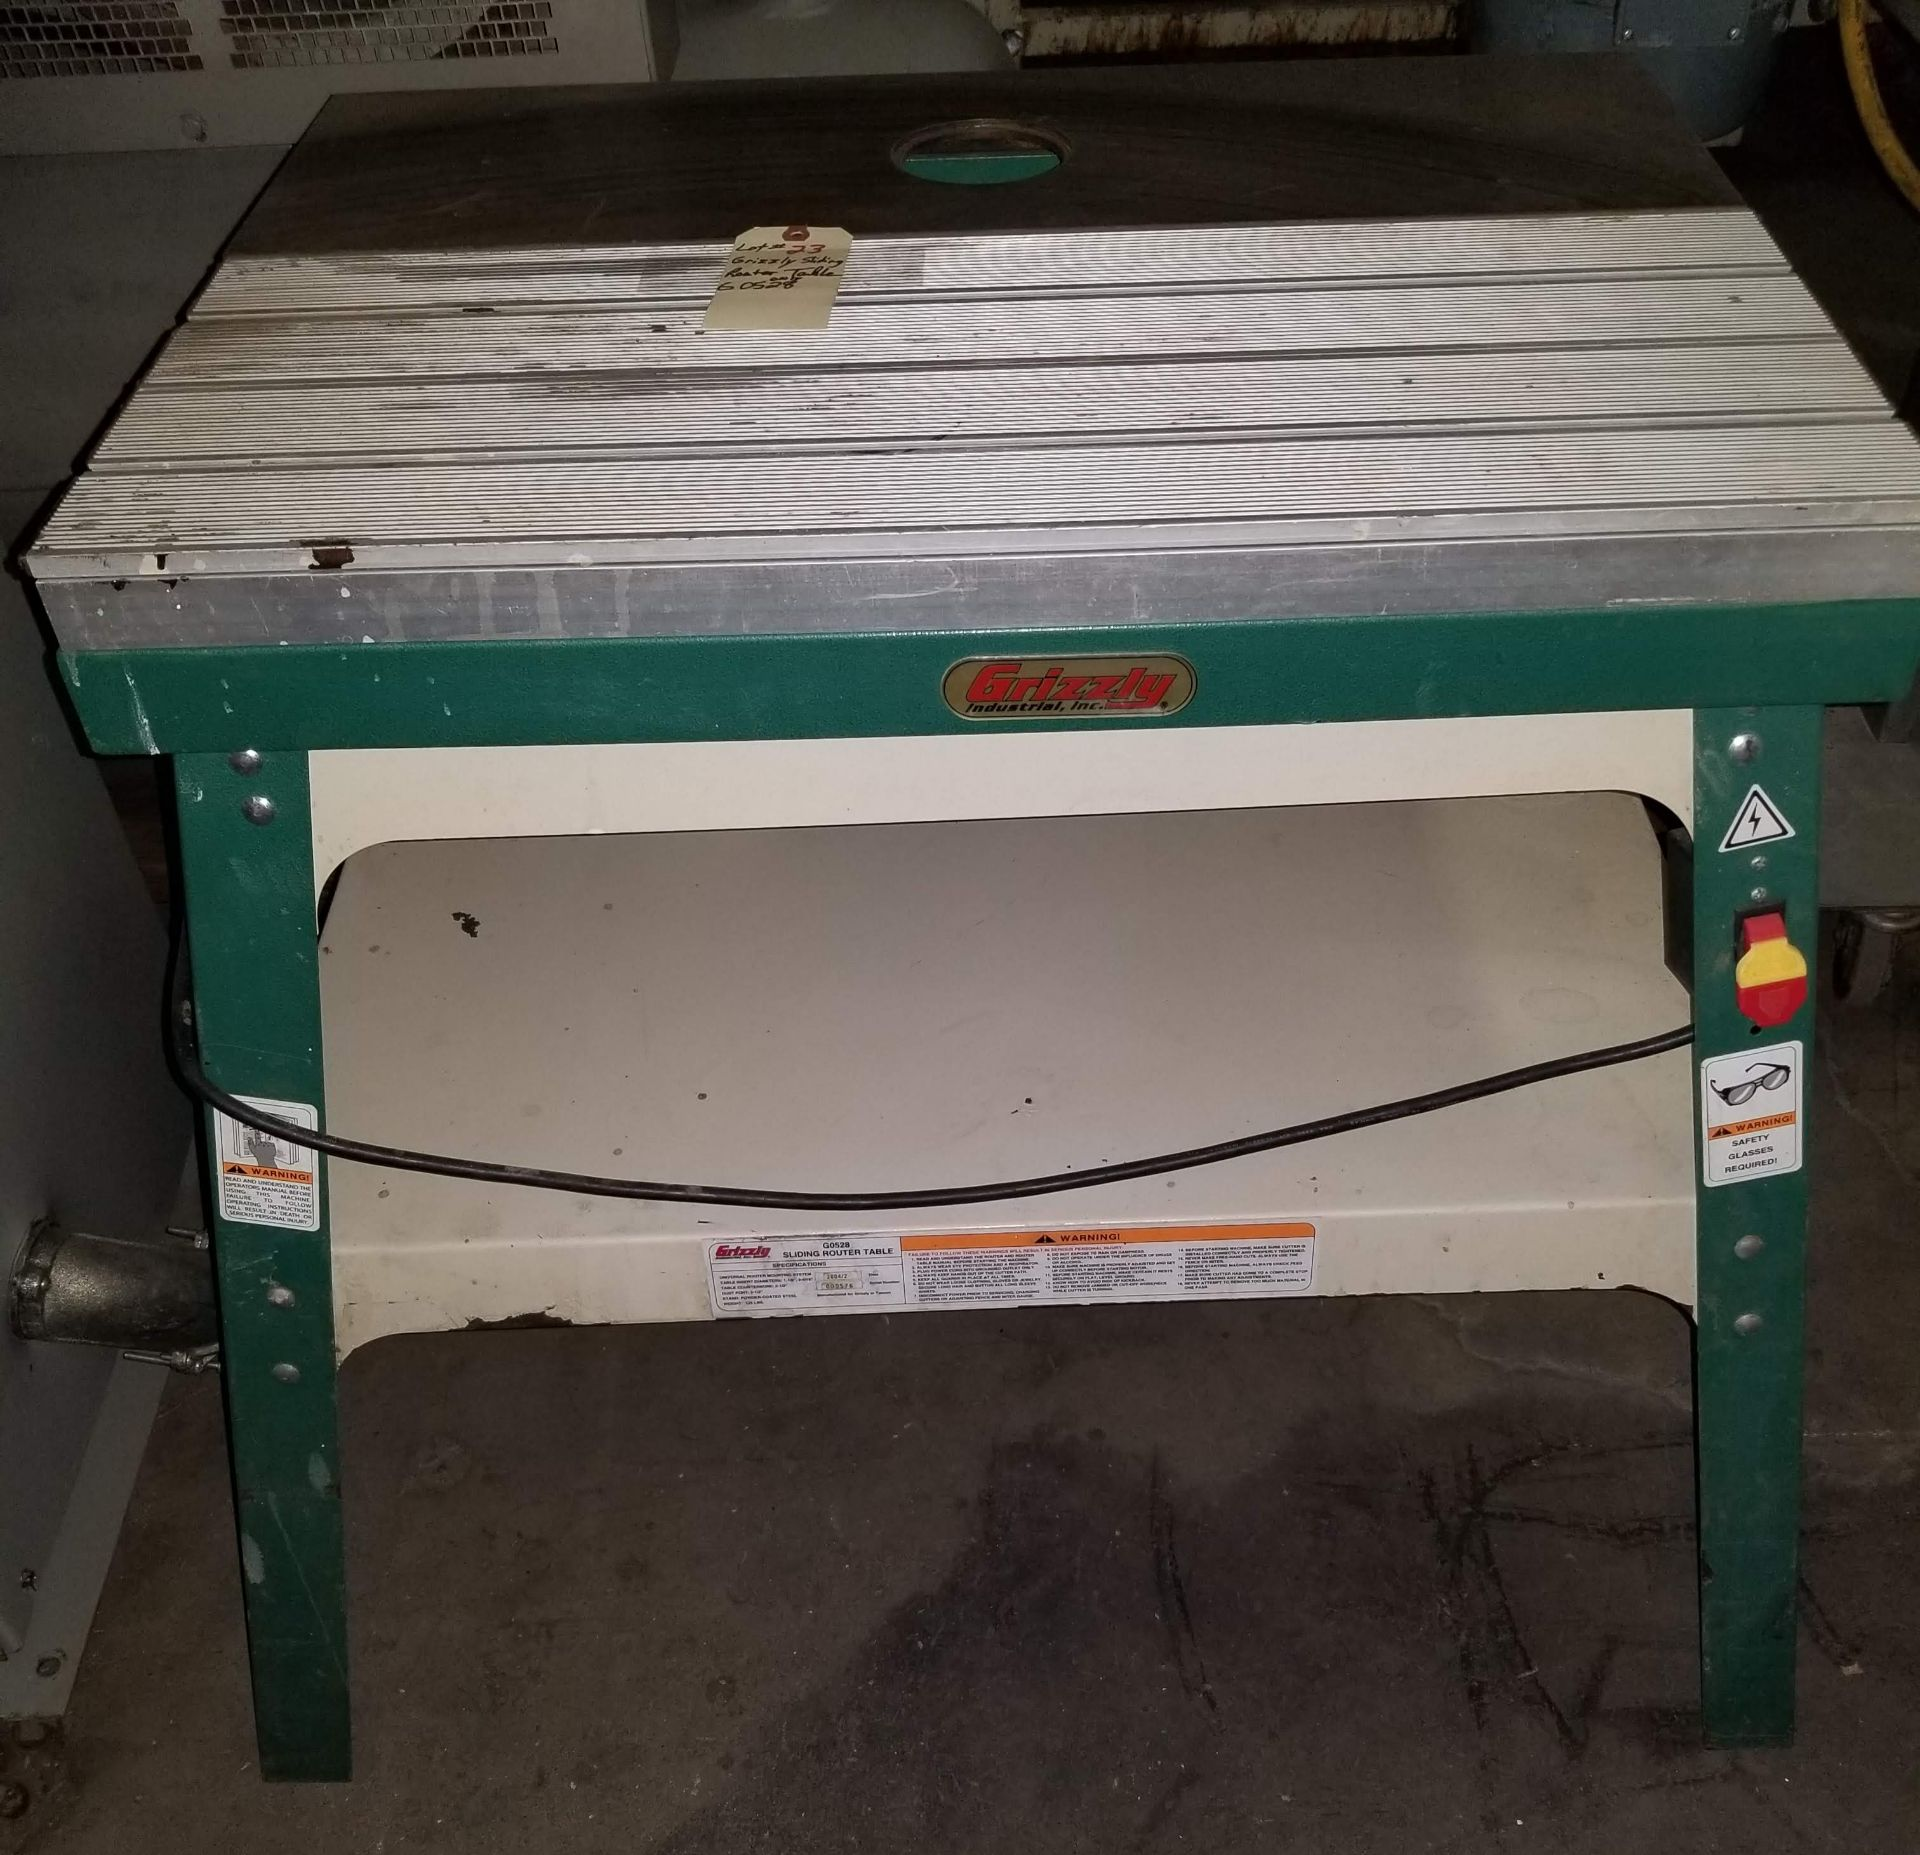 Lot 23 - Grizzly Sliding Router Table, Model # G0528, Cast iron table, Accepts practically any brand of